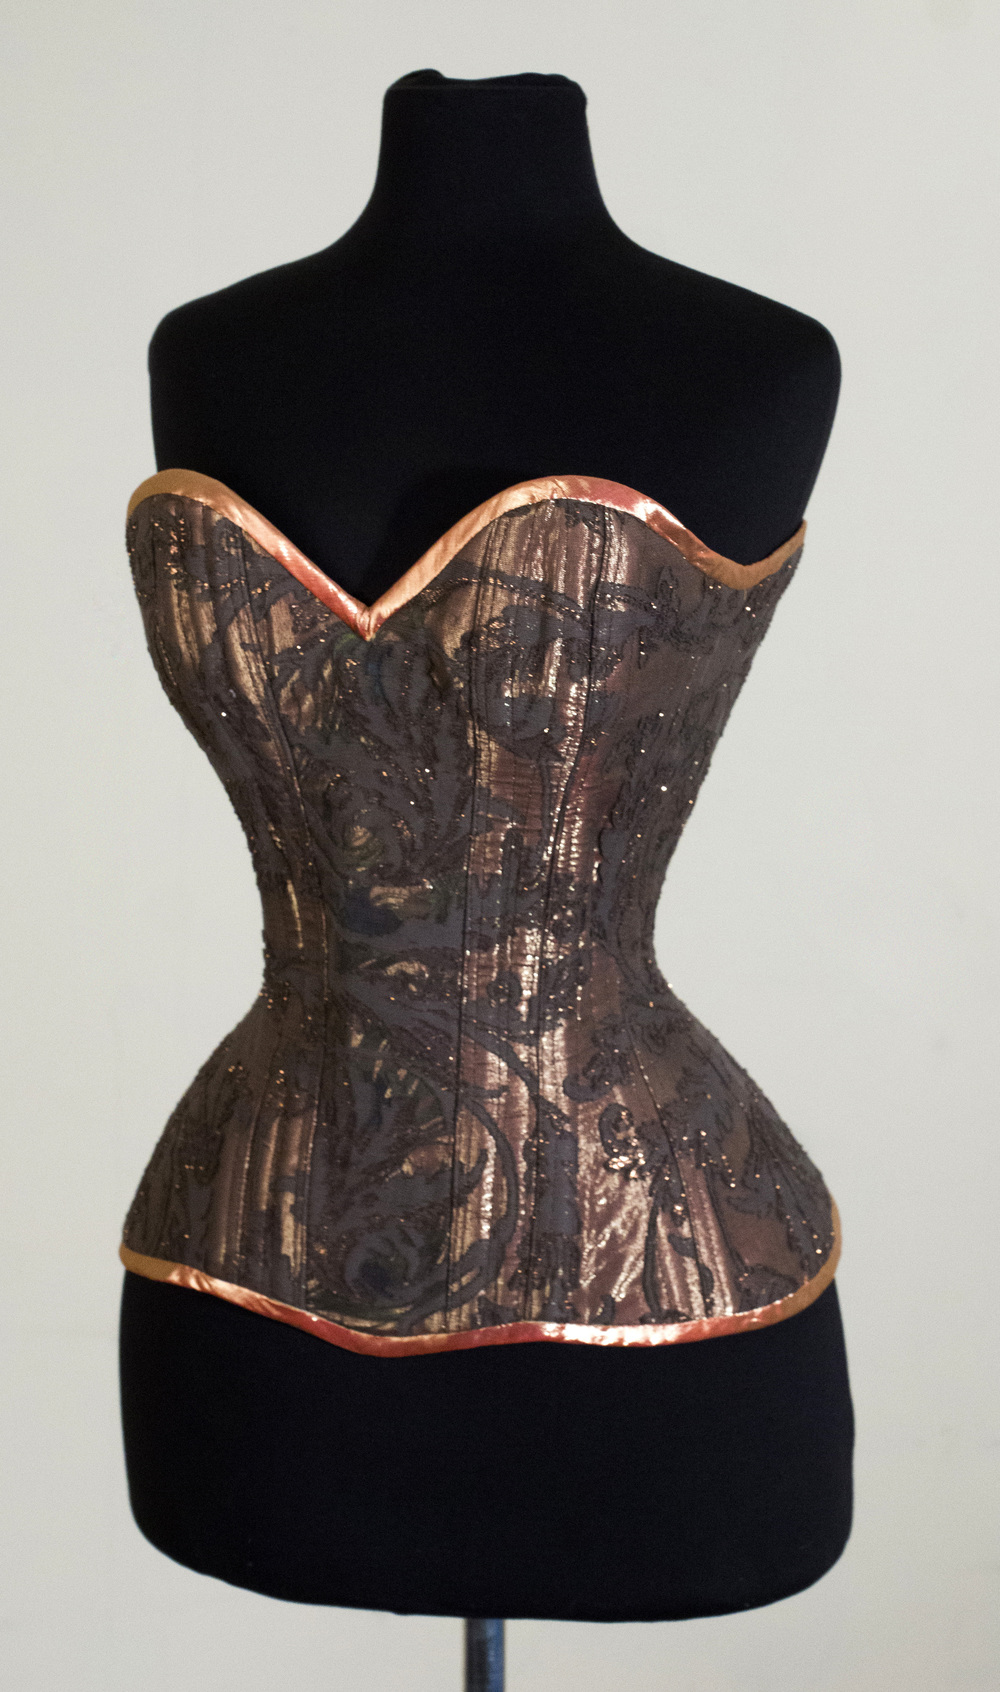 A Crikey Aphrodite corset using cotton madras from MYB overlaid on copper metallic silk.